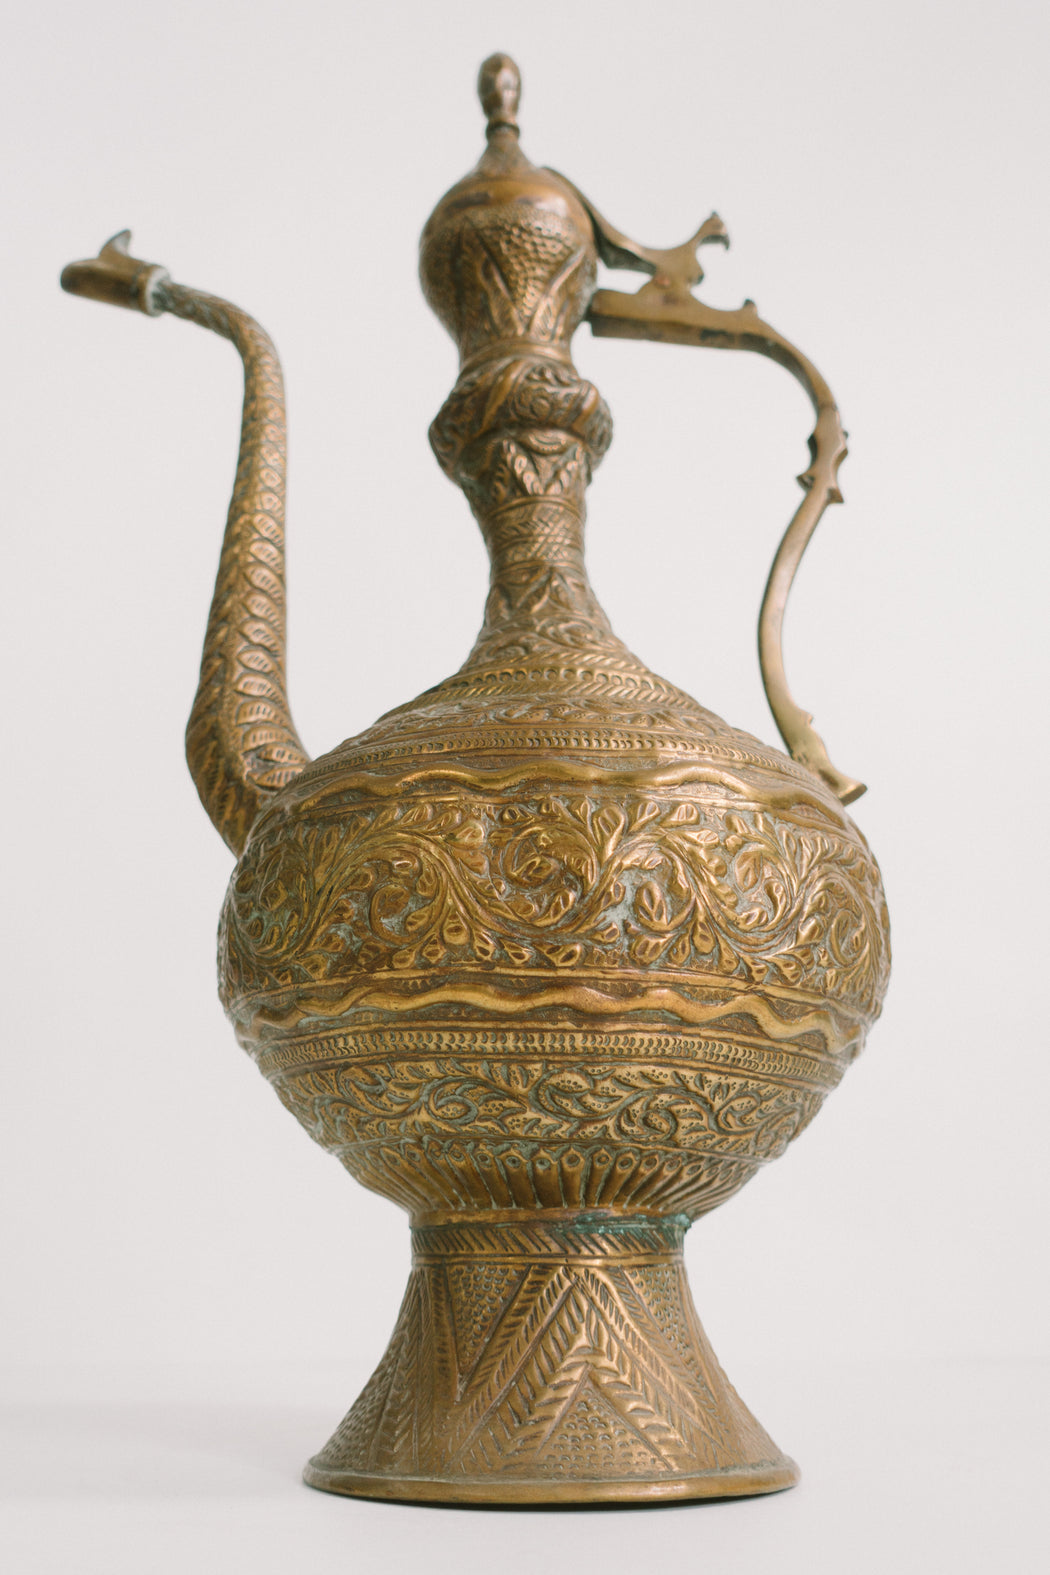 Vintage Aftaba Water Pitcher | Middle Eastern Decorative Metalware